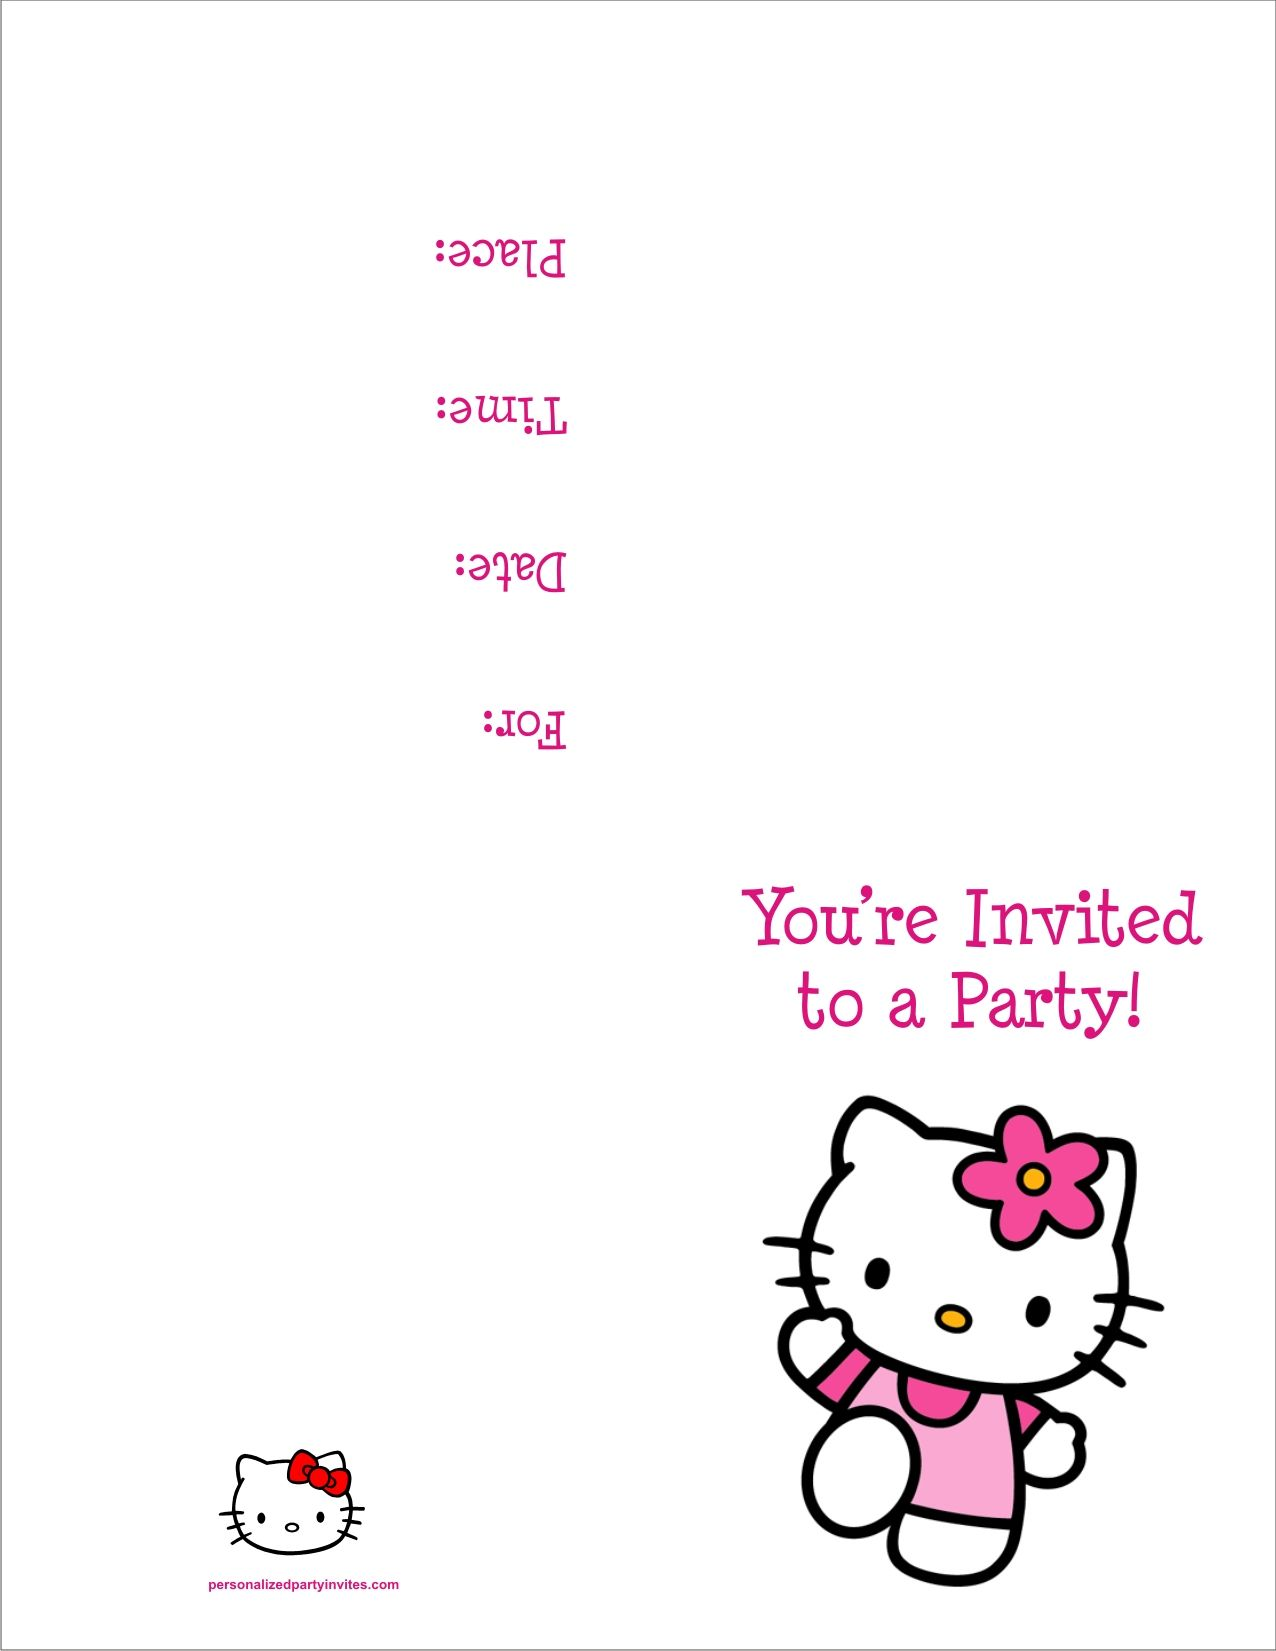 Free Hello Kitty Printables Hello Kitty FREE Printable Birthday - Party invitation template: birthday party invitation template free online